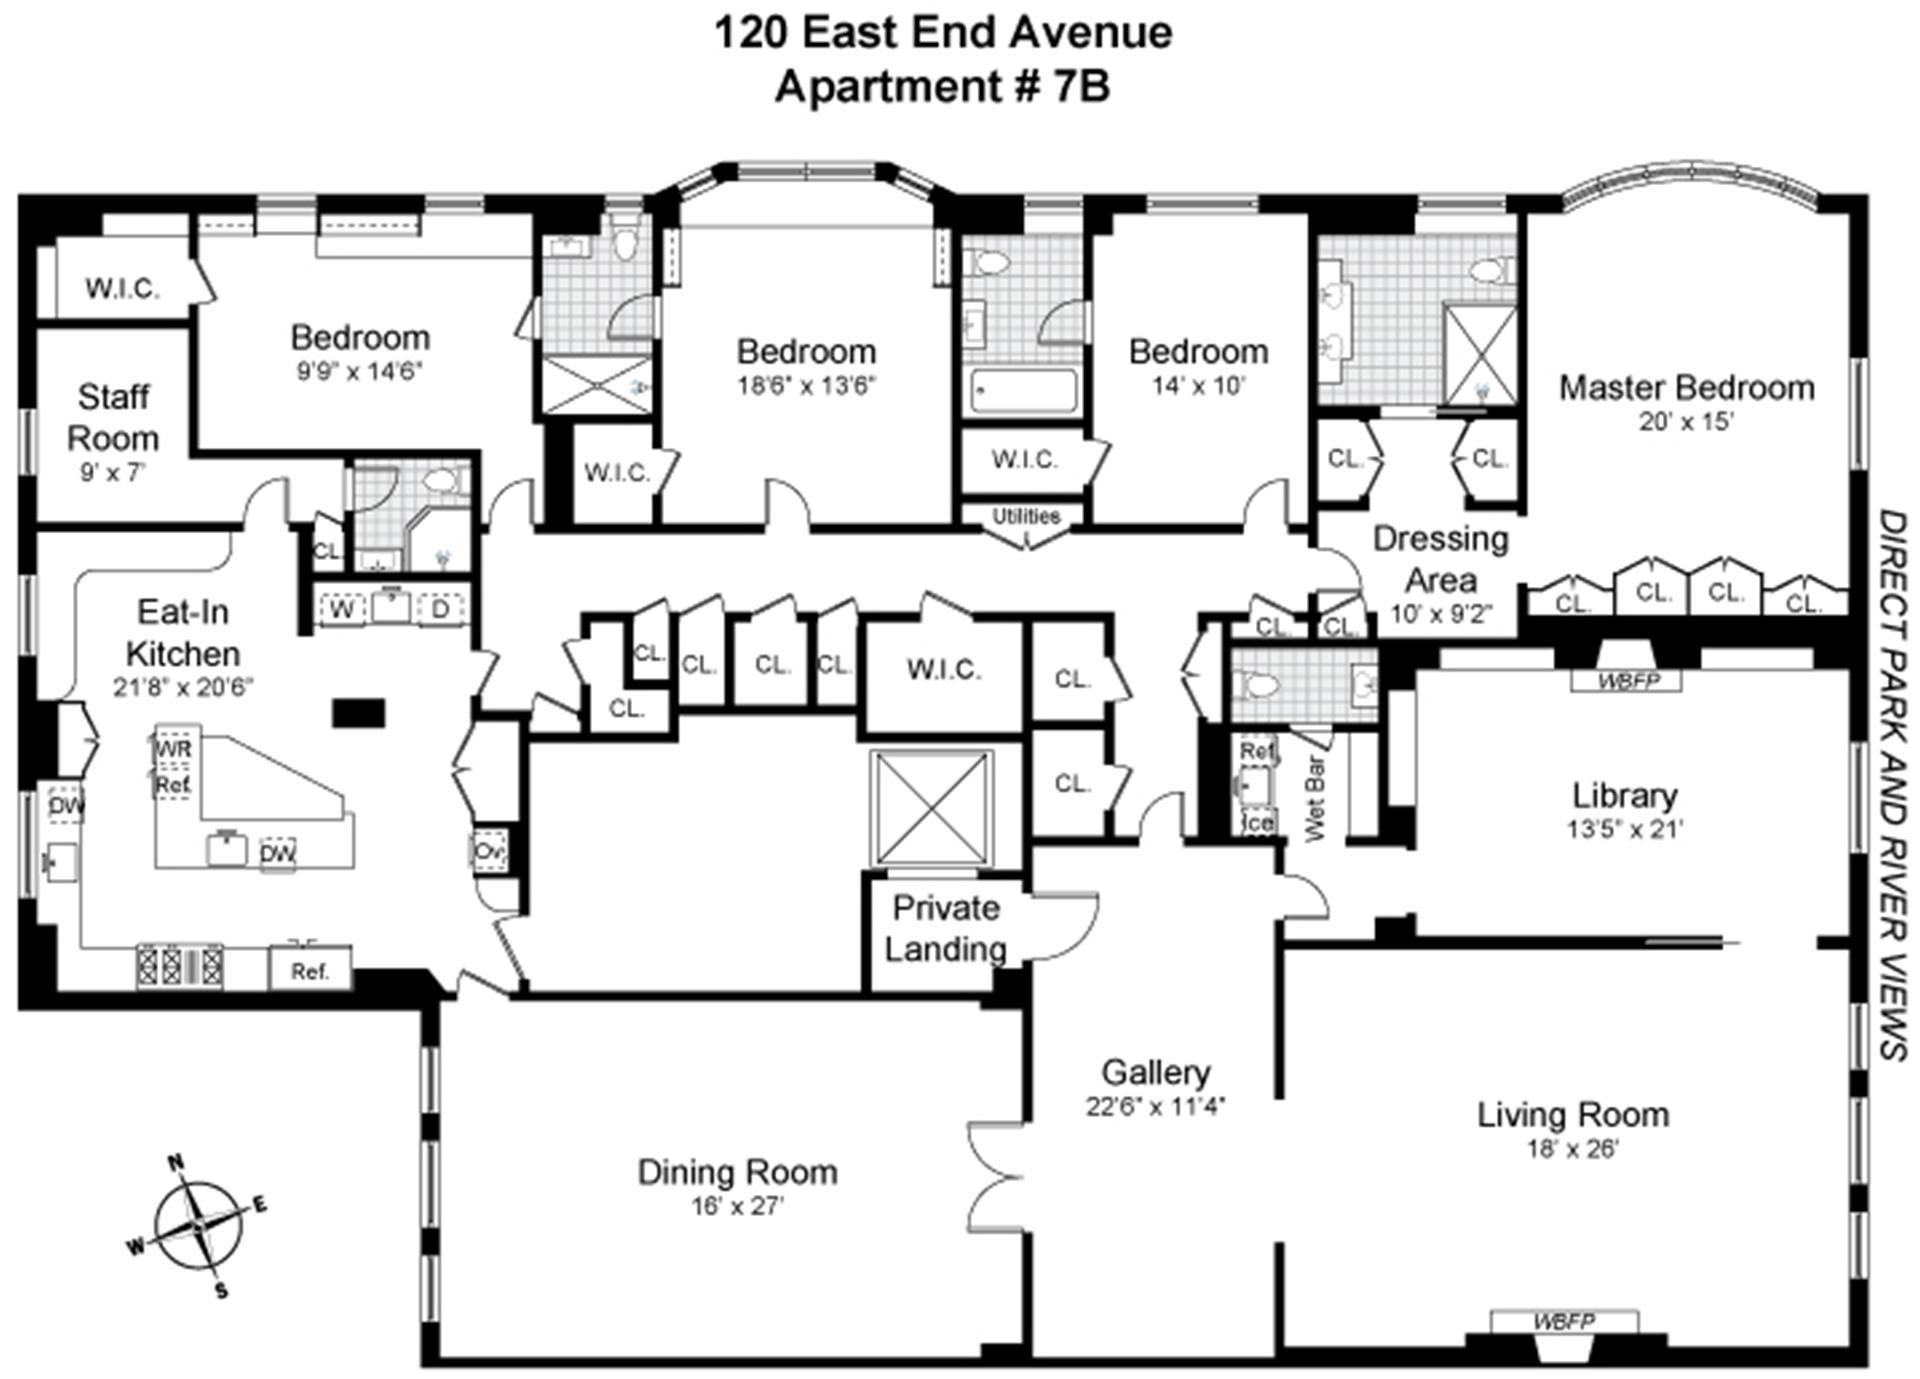 Floor plan of 120 East End Avenue, 7B - Upper East Side, New York